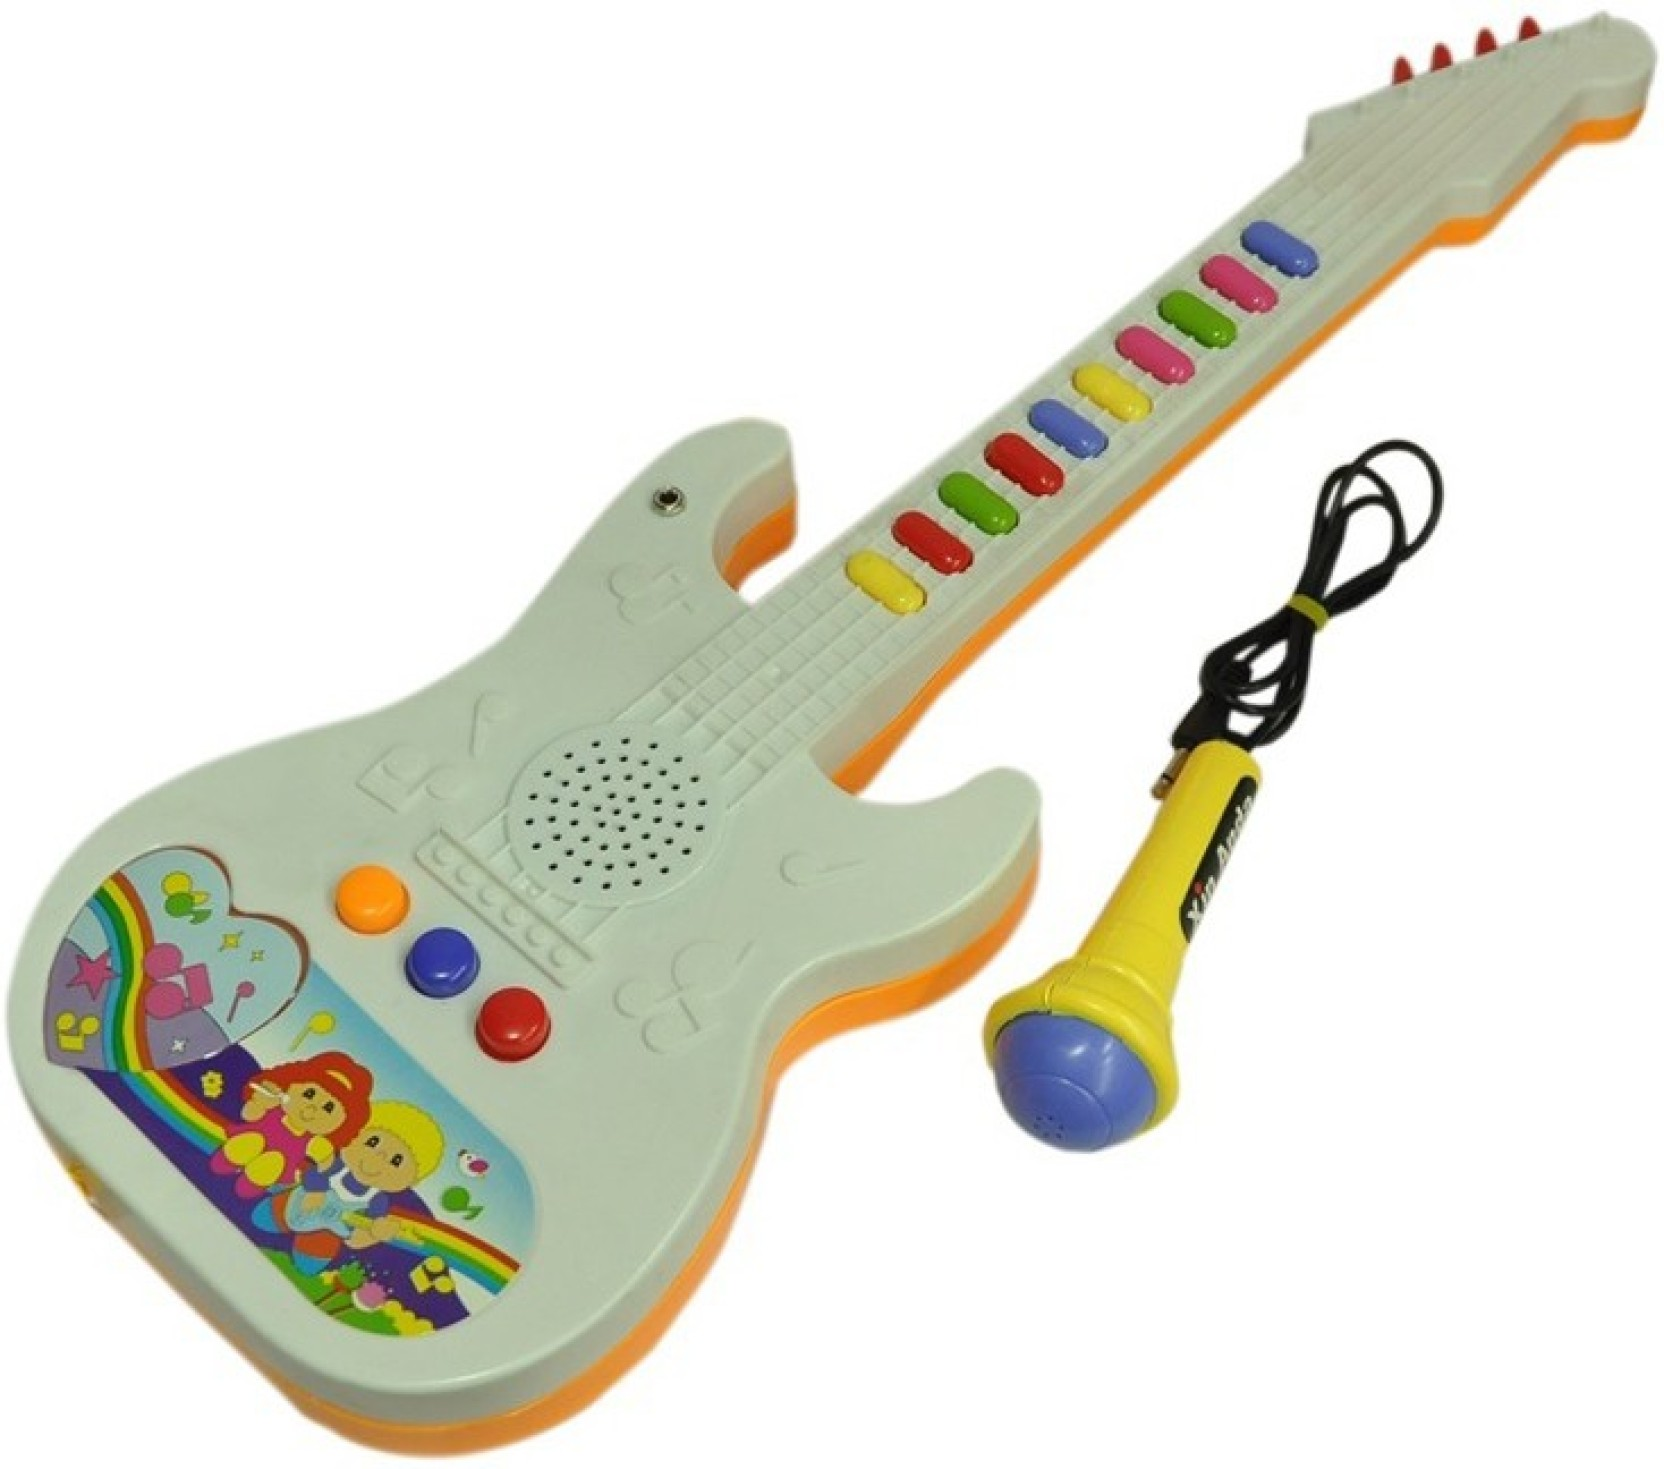 Shop & Shoppee Musical Guitar with Button and Mike Musical